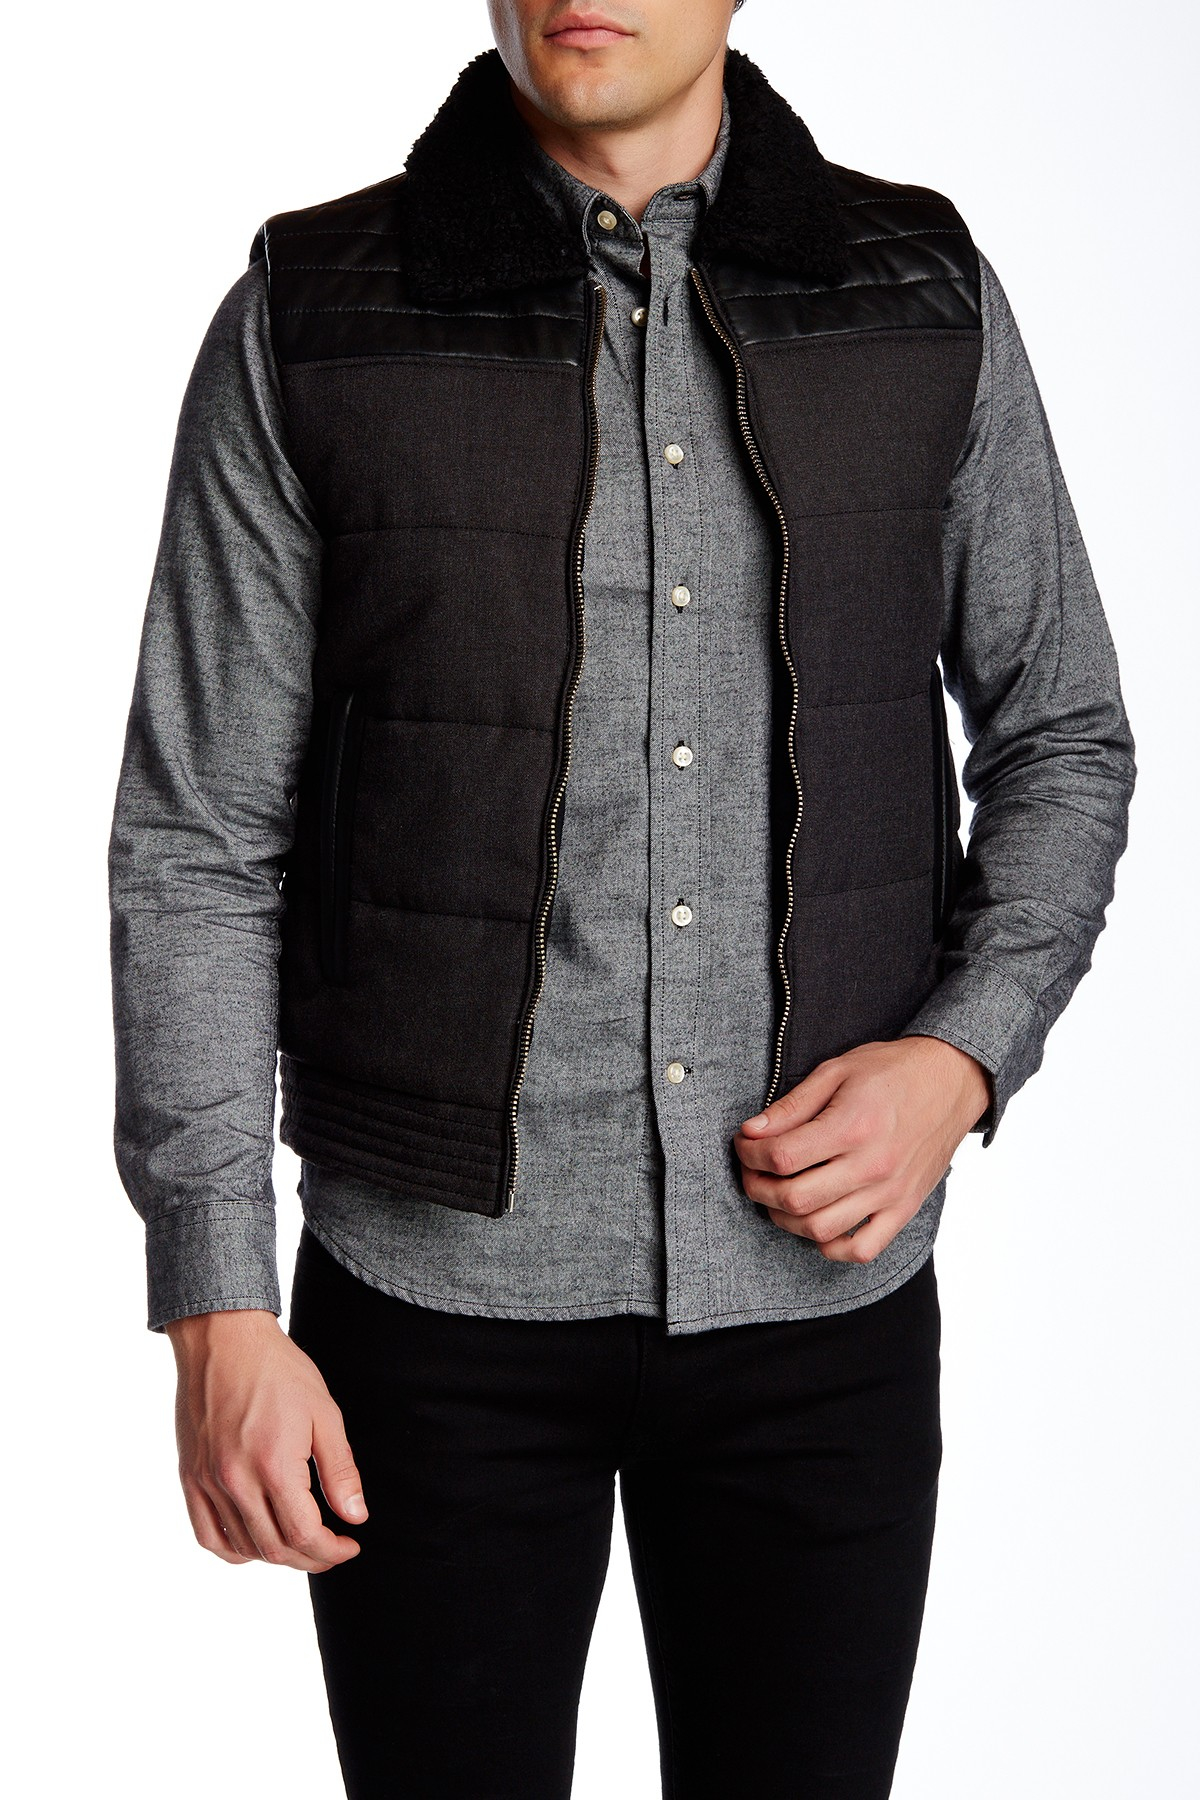 Slate And Stone Clothing : Slate stone faux fur spread collar vest in black for men